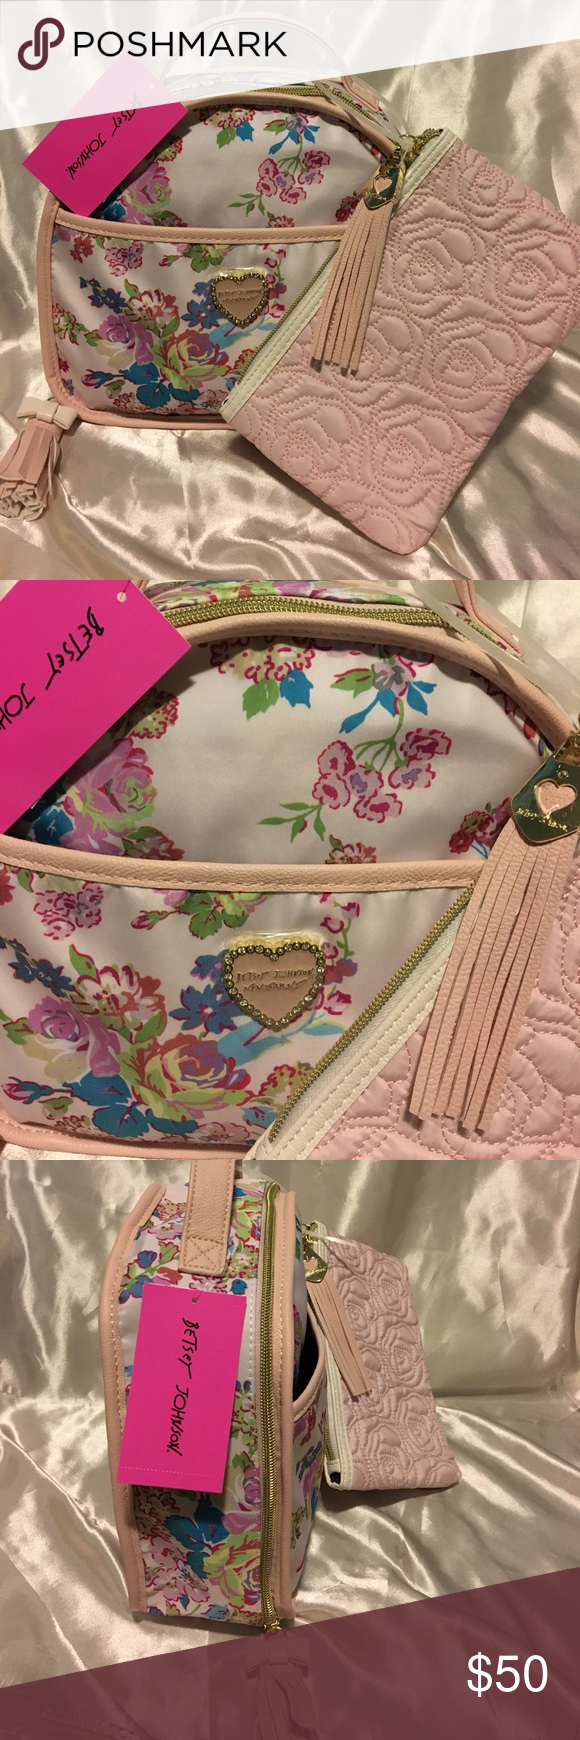 💋NWT Betsey Johnson Floral Train Case w/ pouch BRAND NEW with tag Betsey Johnson Blush Floral Train Case with Pouch! Gorgeous with interior pockets,gold zipper closure, a top handle, and two tassels. Will ship immediately, get her now❤ Betsey Johnson Bags Cosmetic Bags & Cases